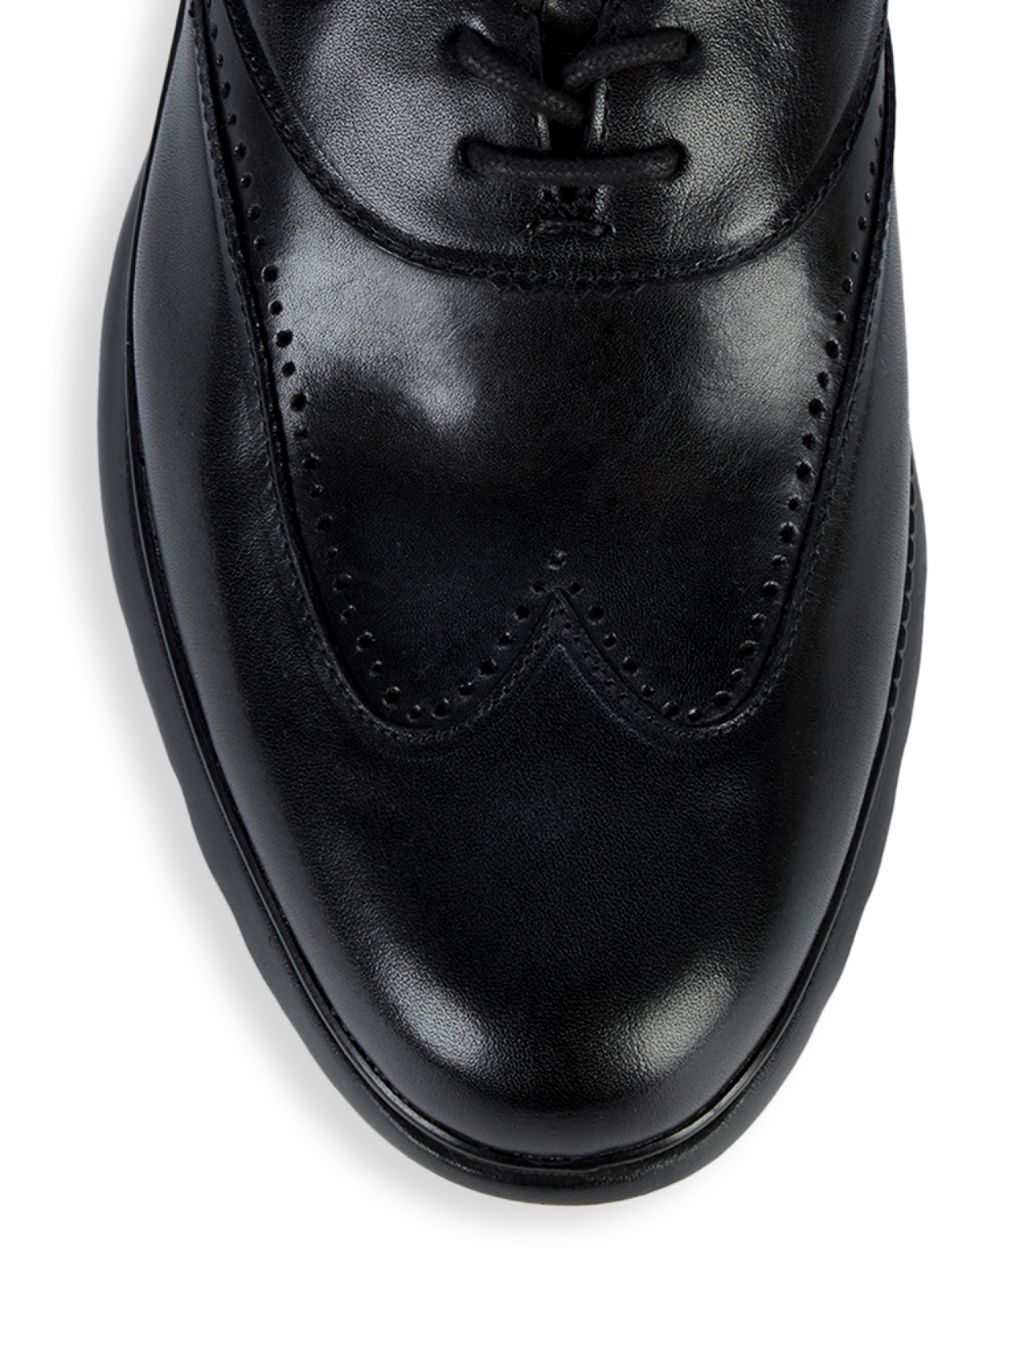 Cole Haan Zerogrand Leather Wingtip Oxford Runners